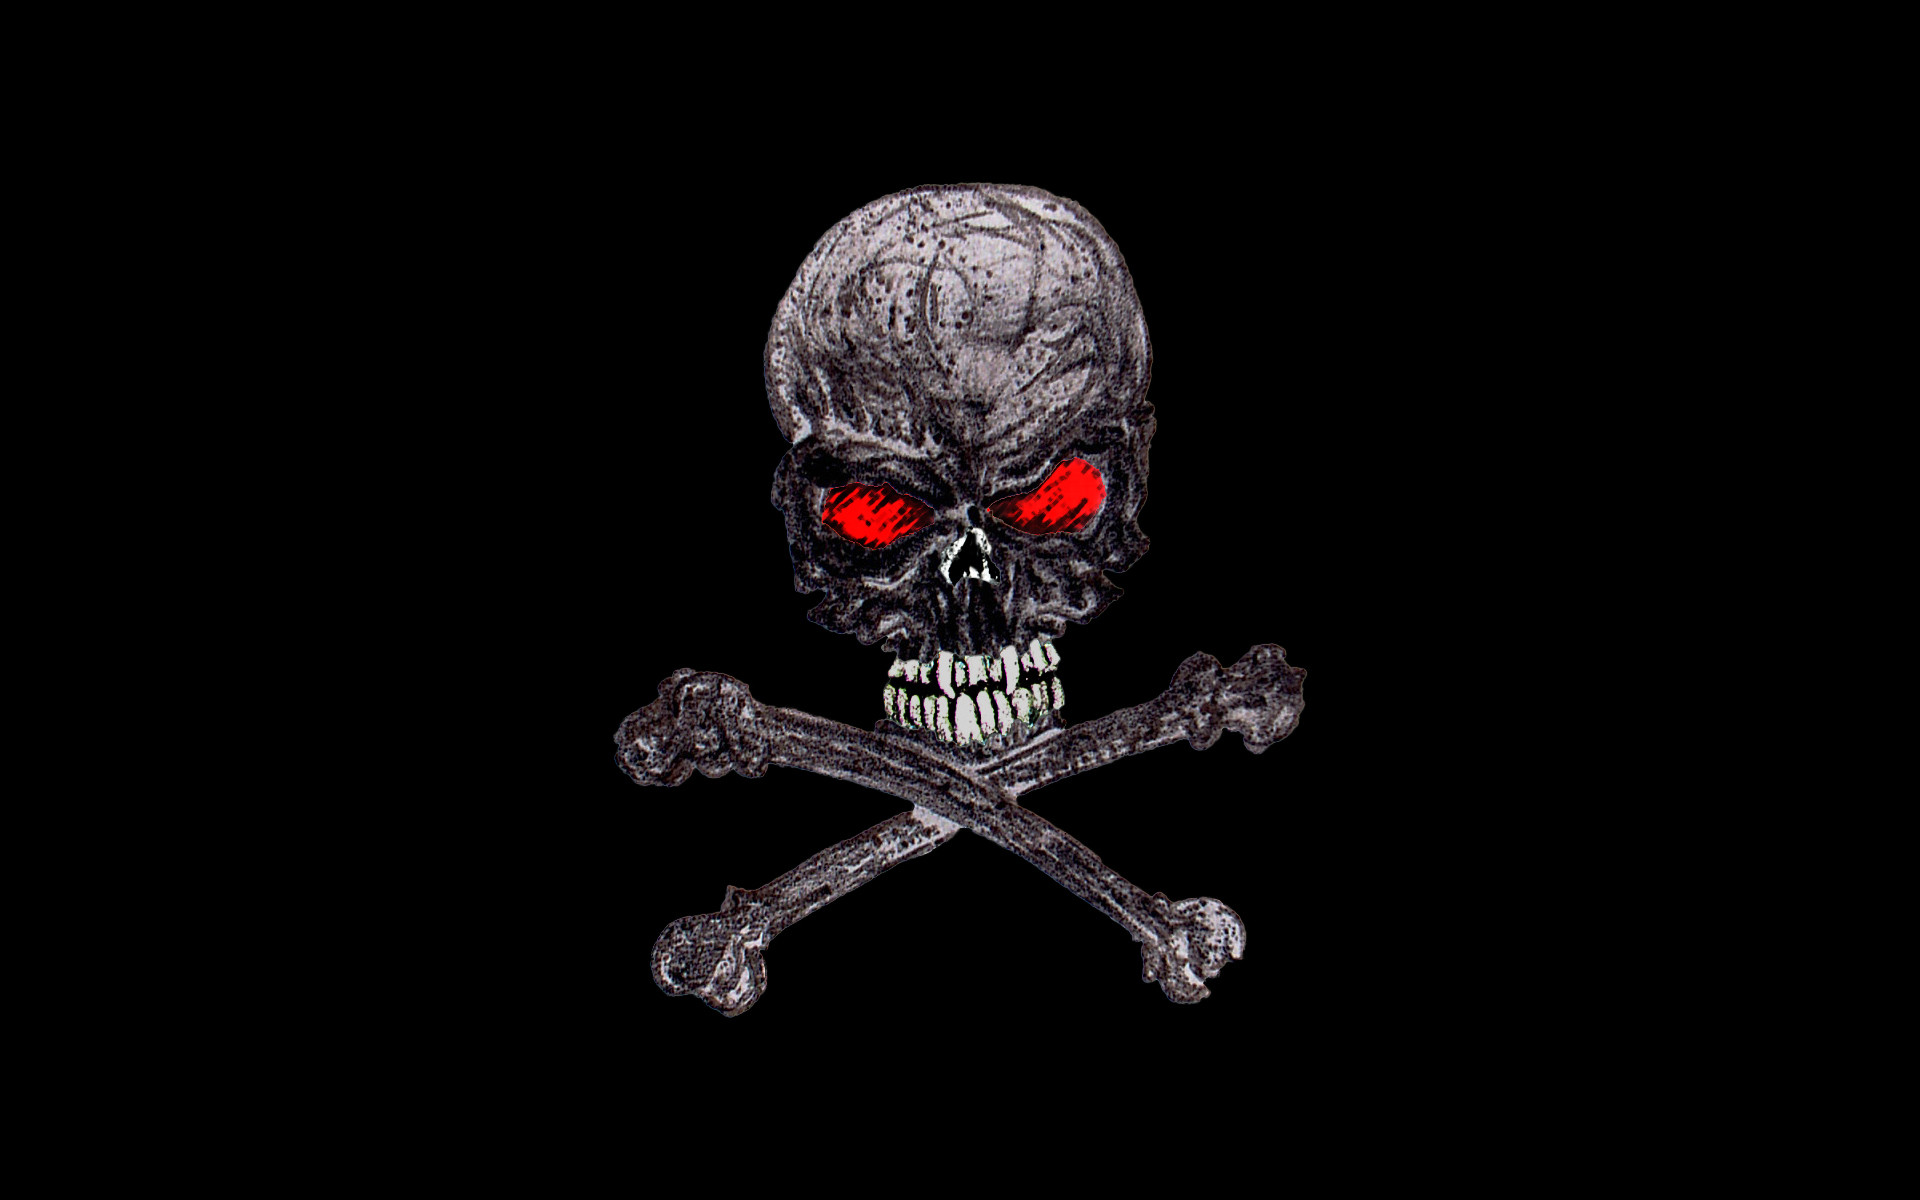 Fantastic Wallpaper High Resolution Skull - 983087-evil-skulls-wallpaper-1920x1200-for-iphone-5s  Best Photo Reference_21393.jpg